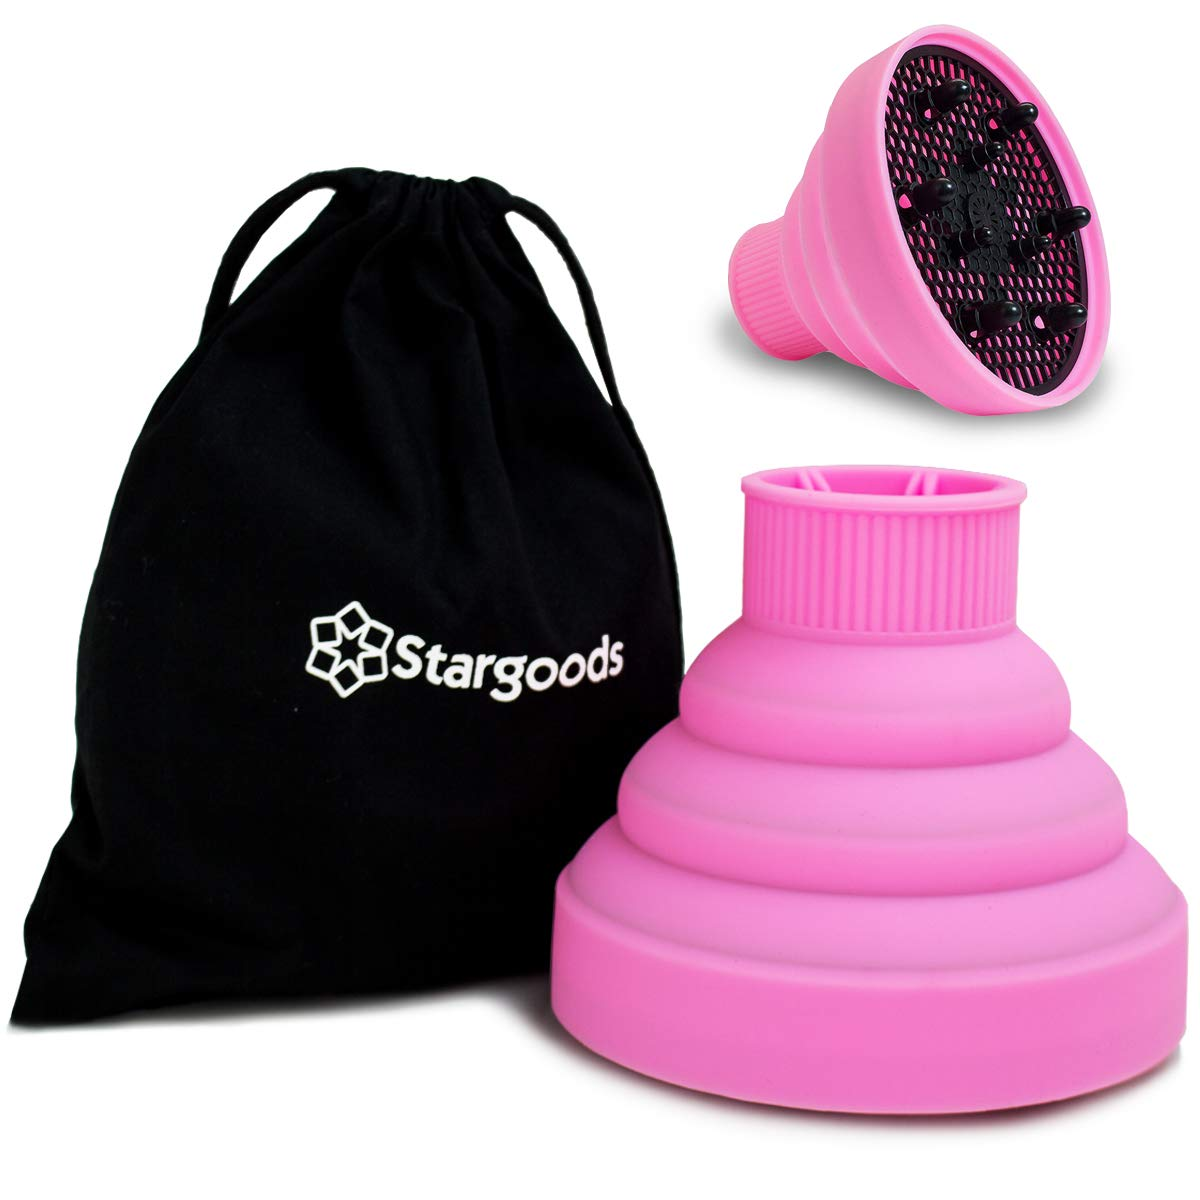 Stargoods Silicone Hair Dryer Diffuser